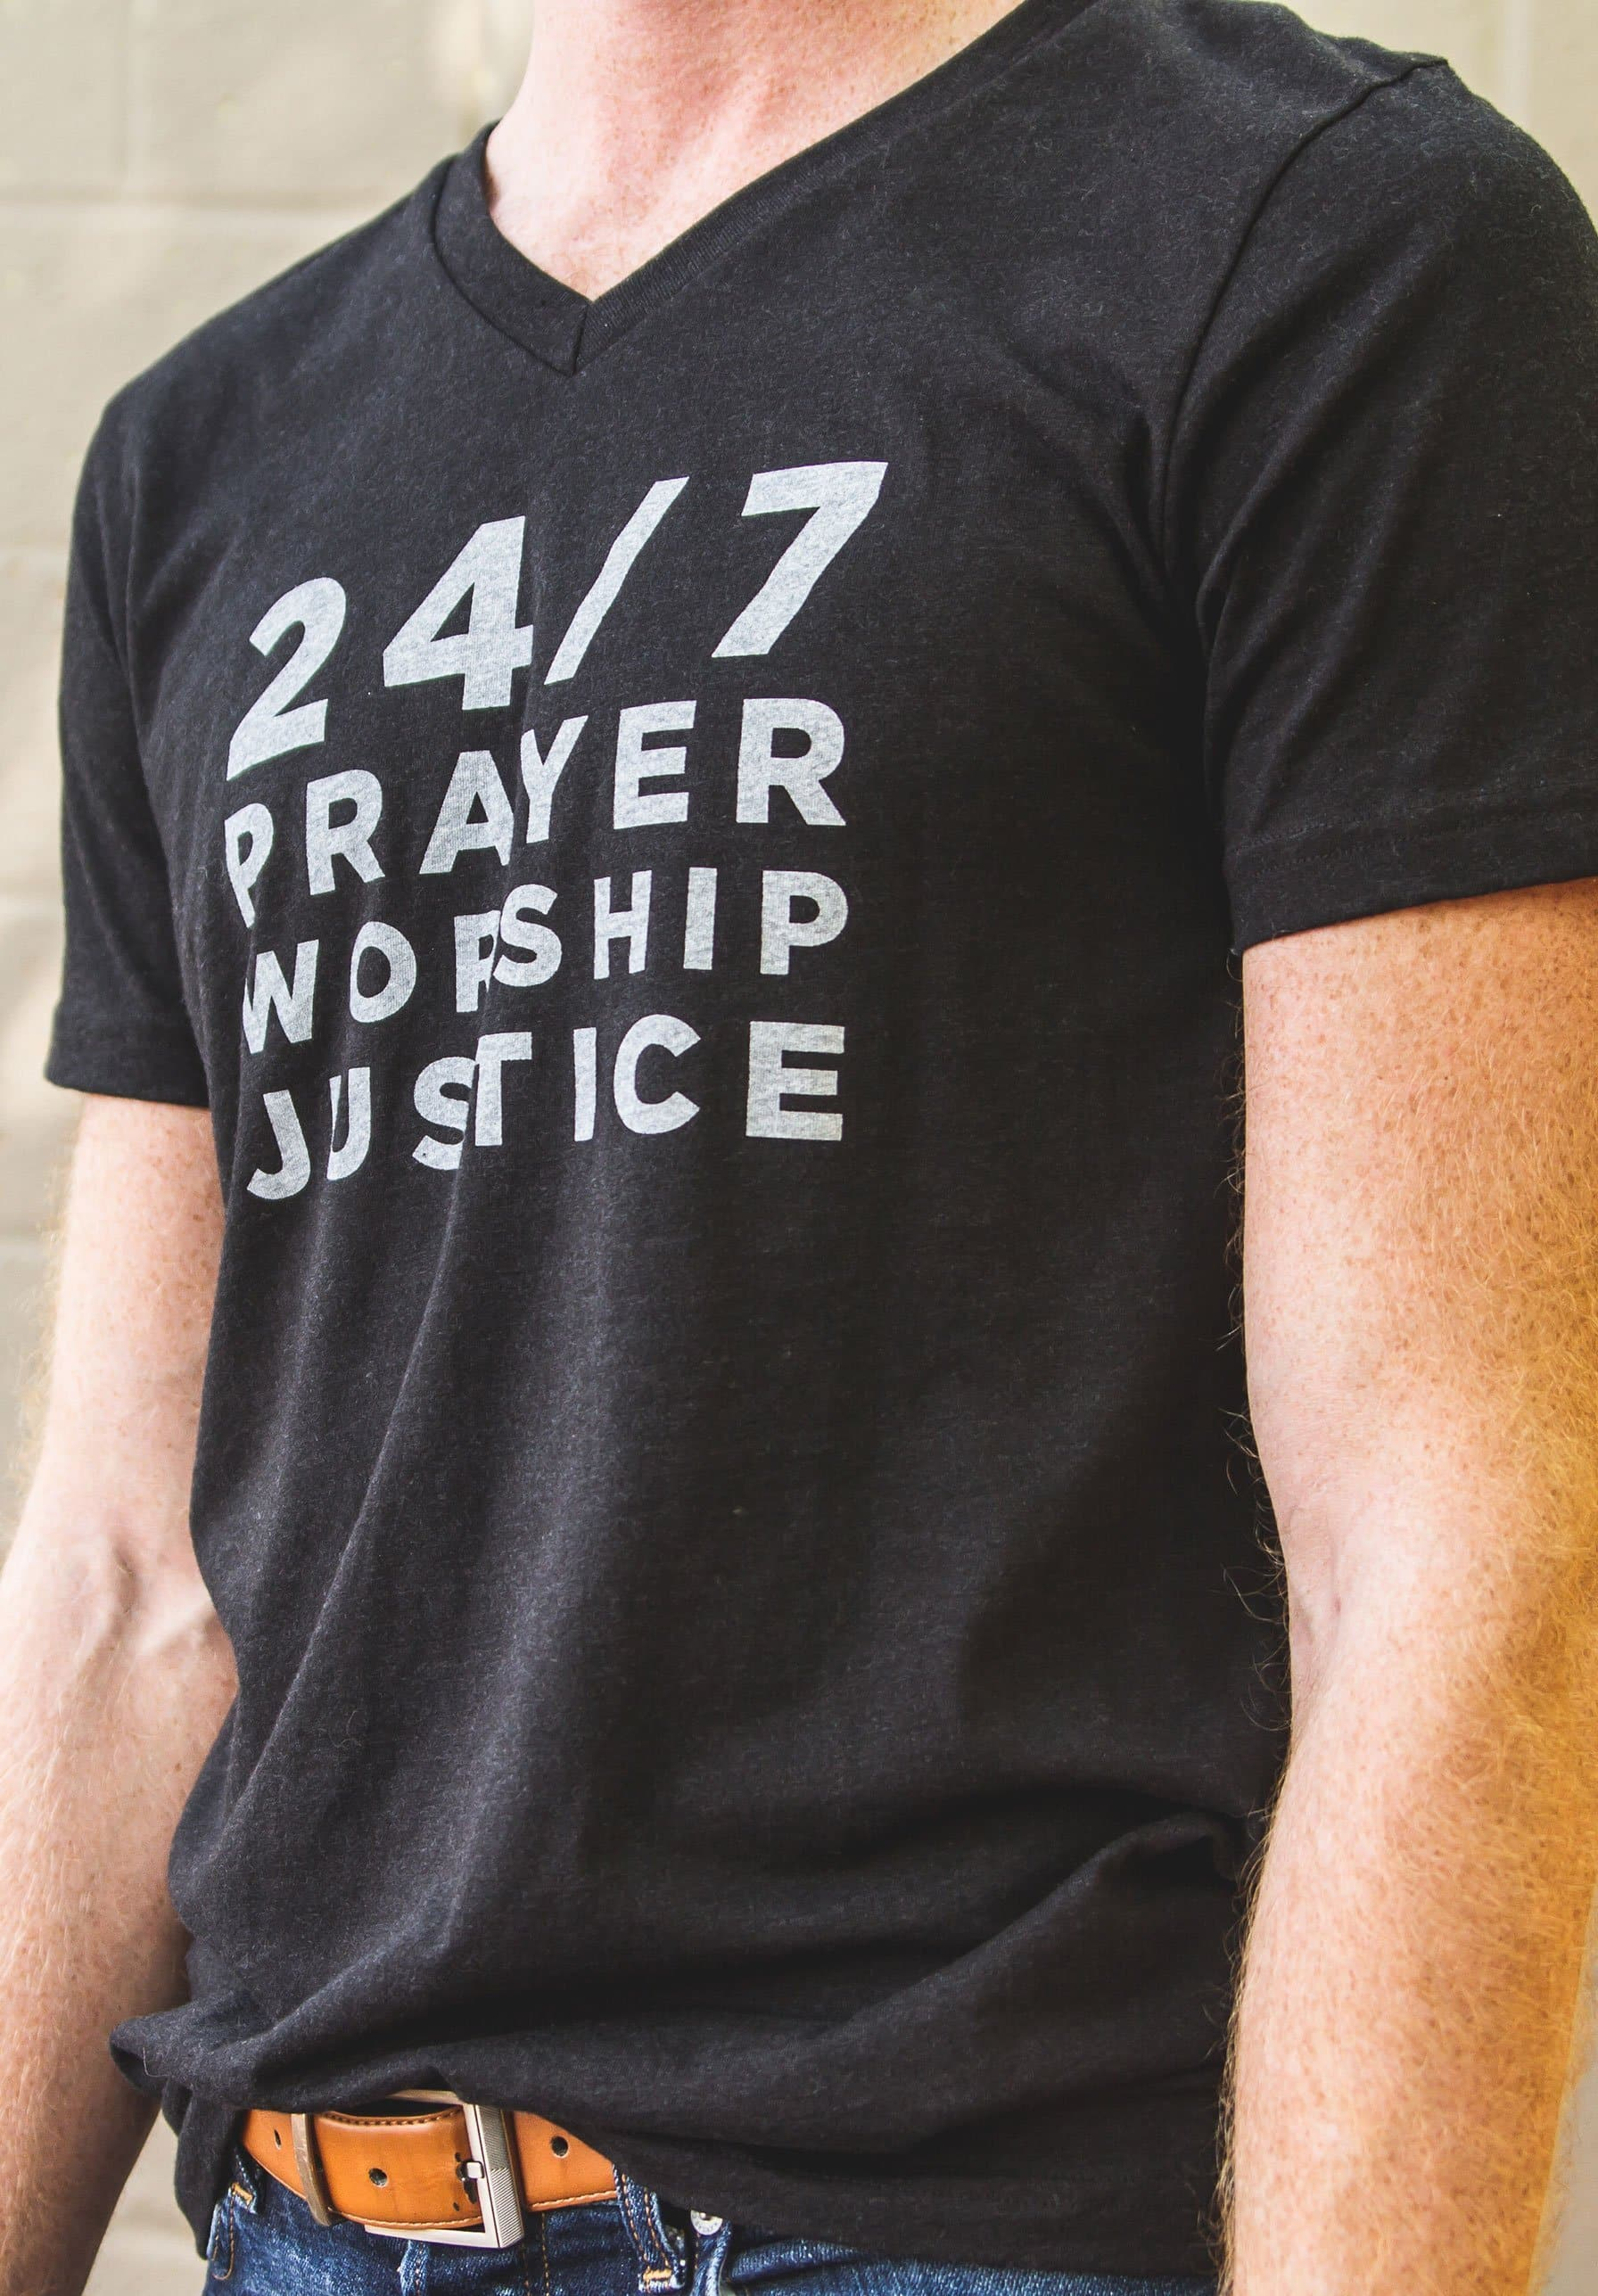 24/7 Prayer, Worship, Justice V-Neck Men's T-Shirt - Merchandise: Clothing - Forerunner Bookstore - Forerunner Bookstore Online Store